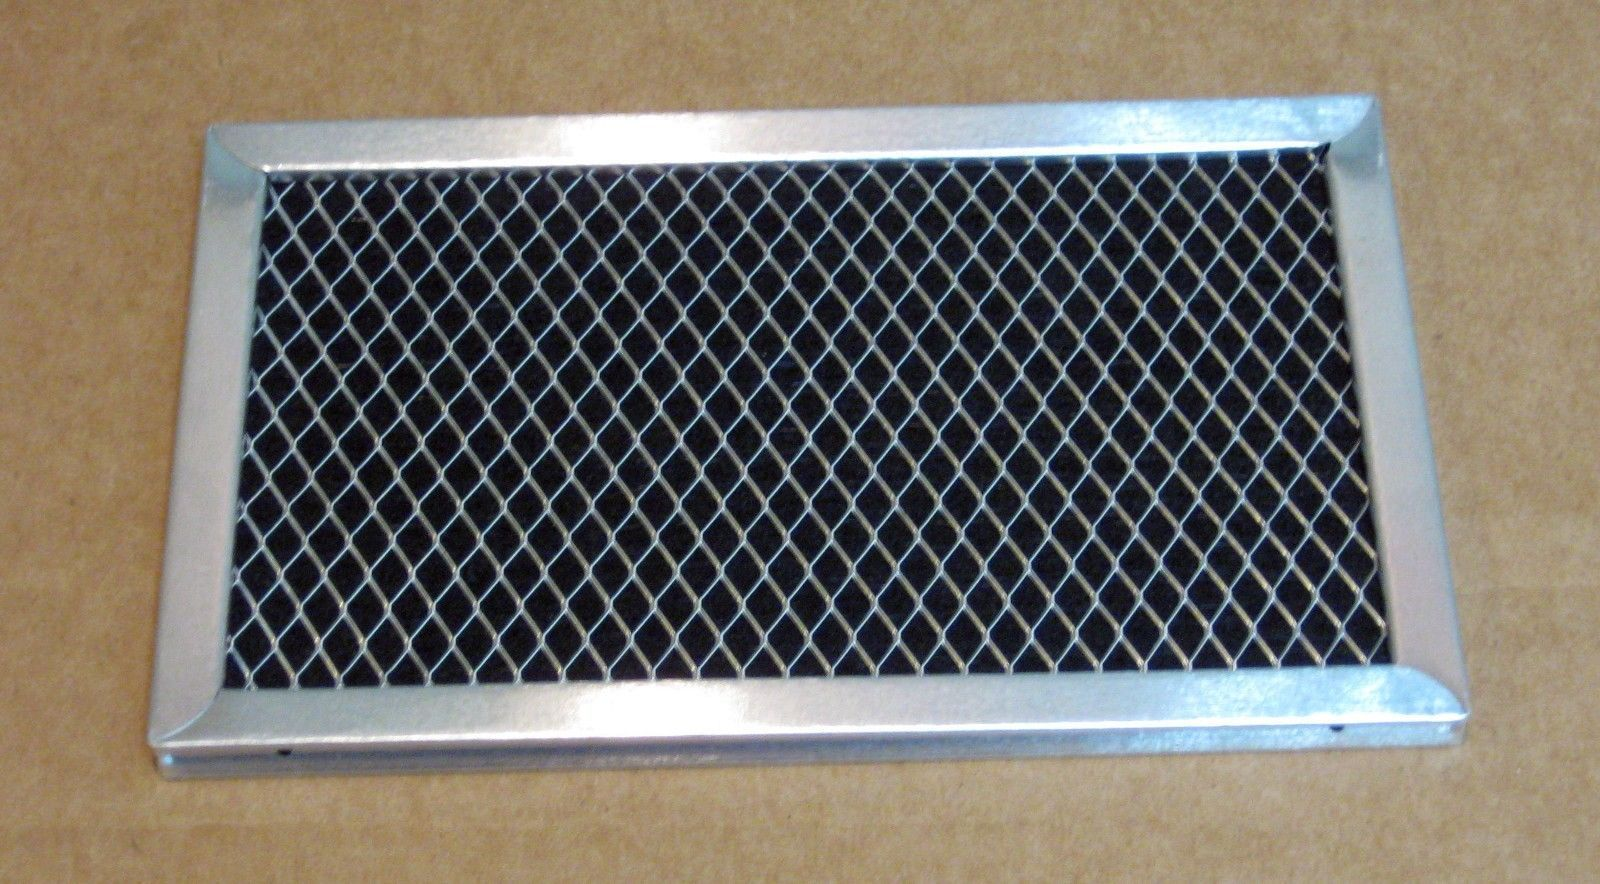 Range Vent Hood Charcoal Filter For Ge Rcp0410 Wb02x10776 Lg